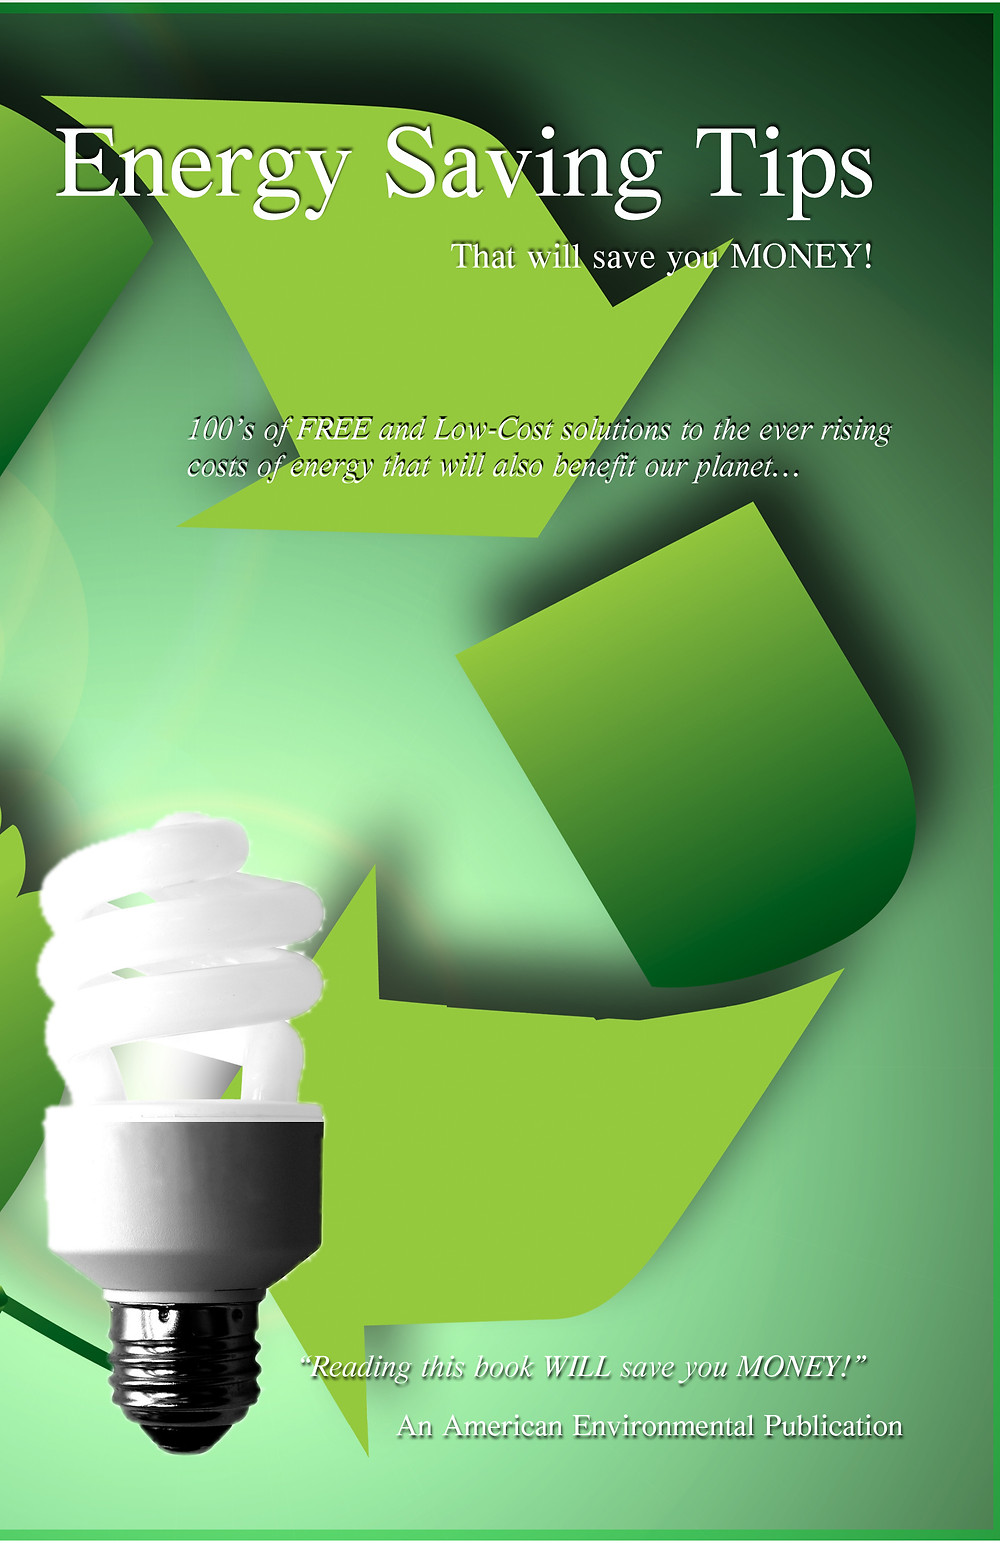 Energy Saving Tips that will Save you Money! - Author B. A. Shields